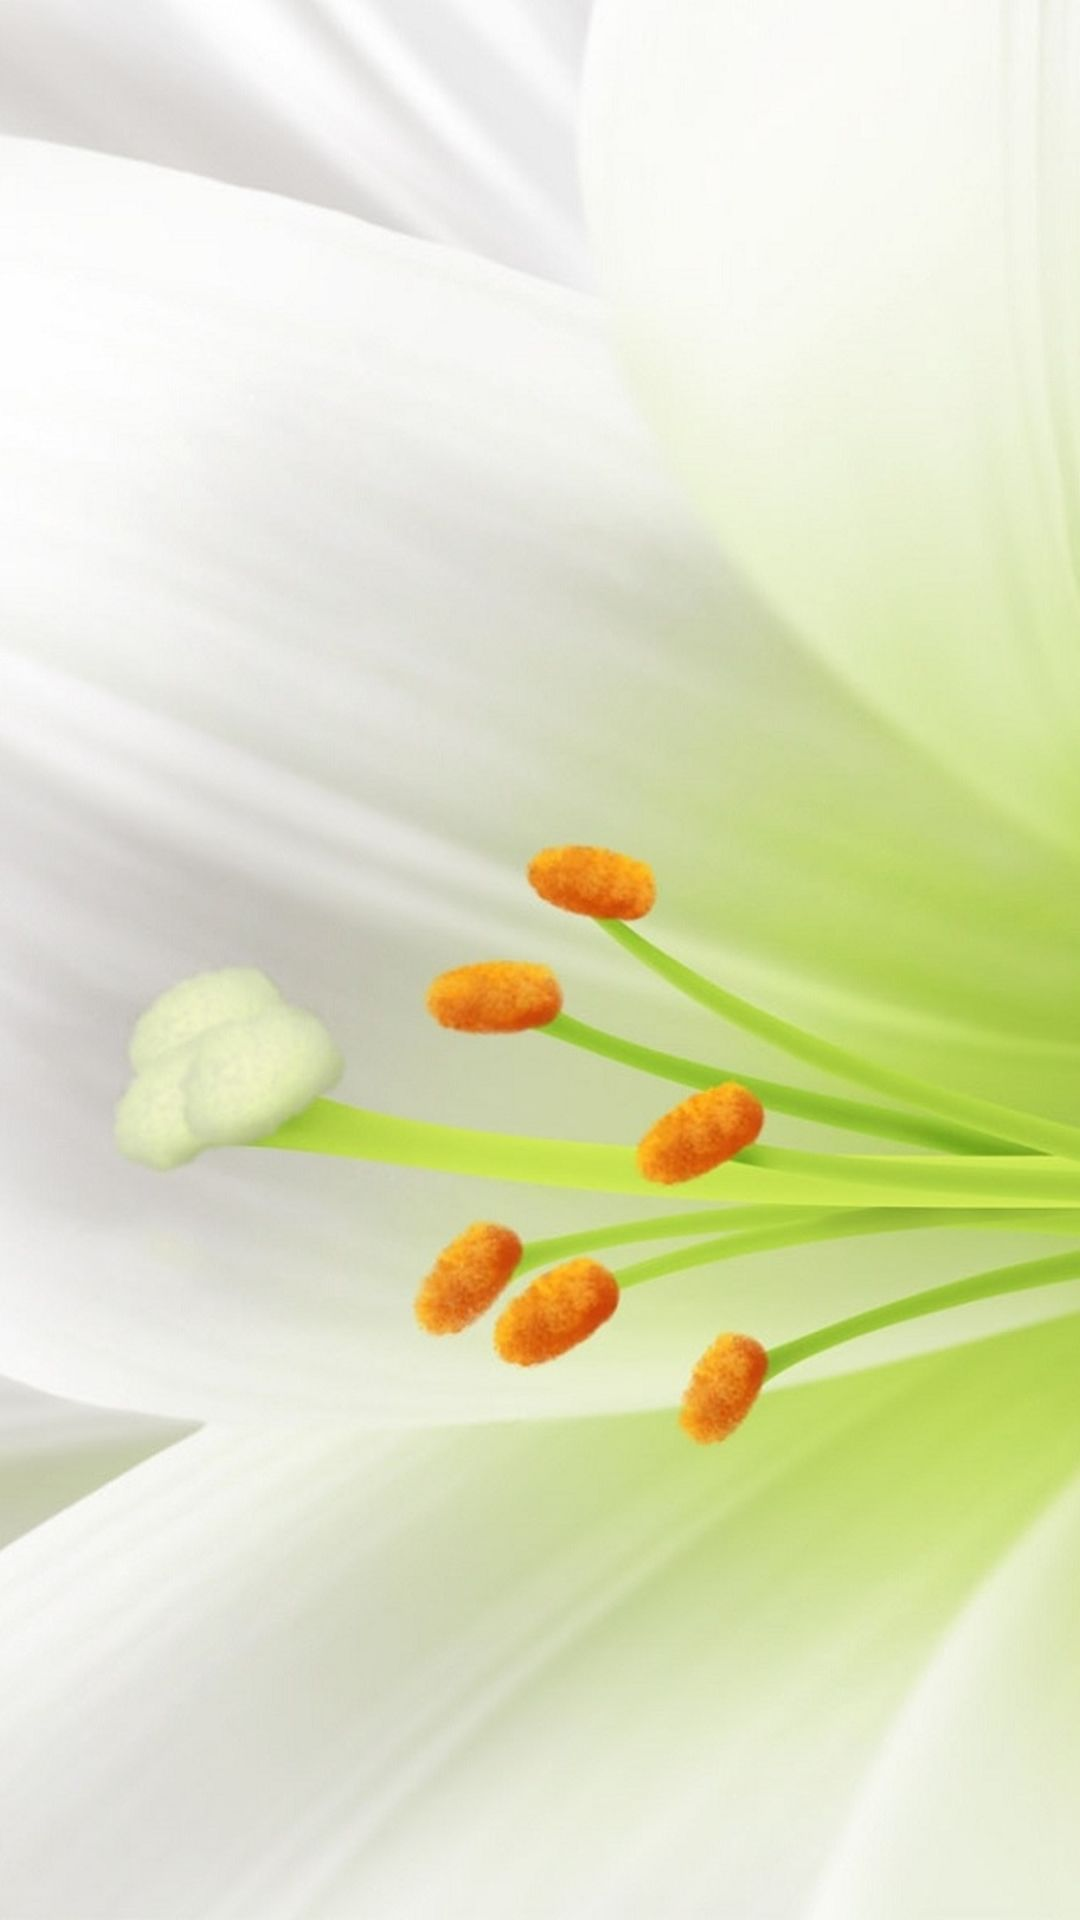 Fall Cell Phone Wallpaper Pure White Lily Flower Macro Iphone 6 Plus Wallpaper